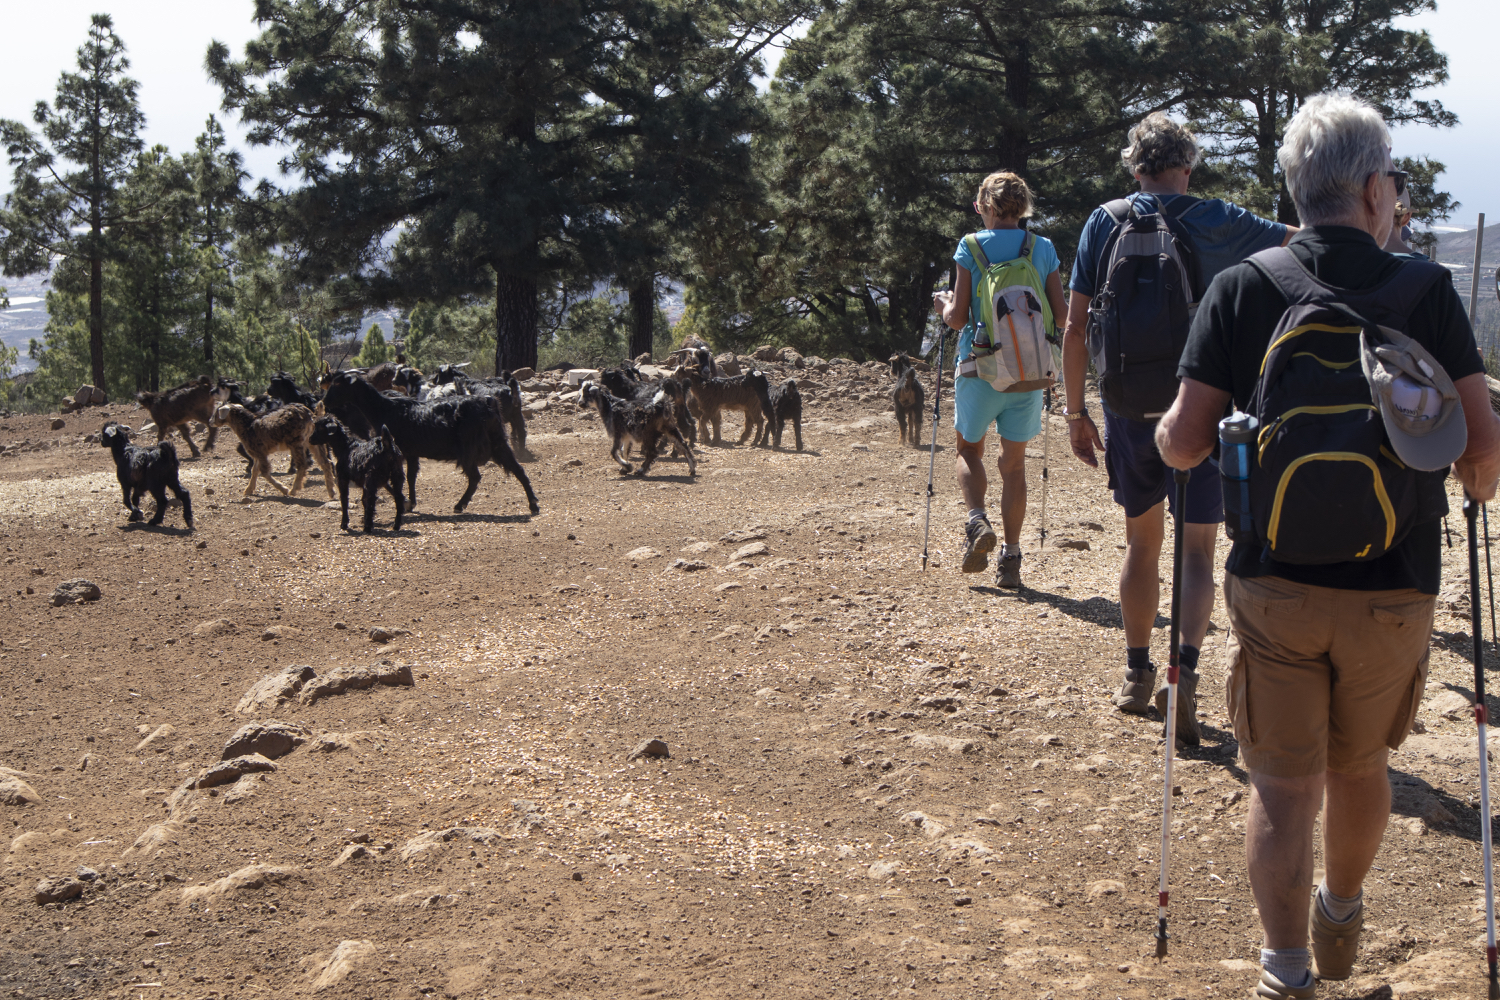 Hiking trail through a goat farm